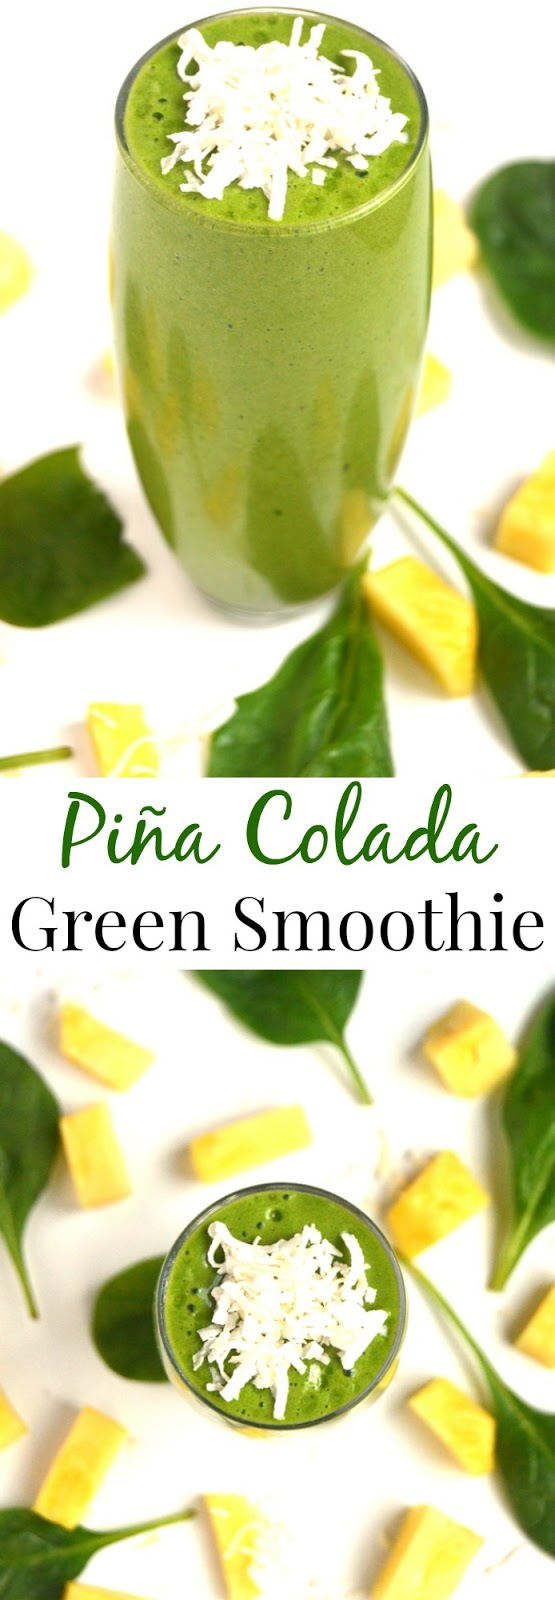 Piña Colada Green Smoothie is ready in 2 minutes and tastes delicious with fresh pineapple, coconut, frozen banana, spinach and protein for a refreshing beverage! www.nutritionistreviews.com